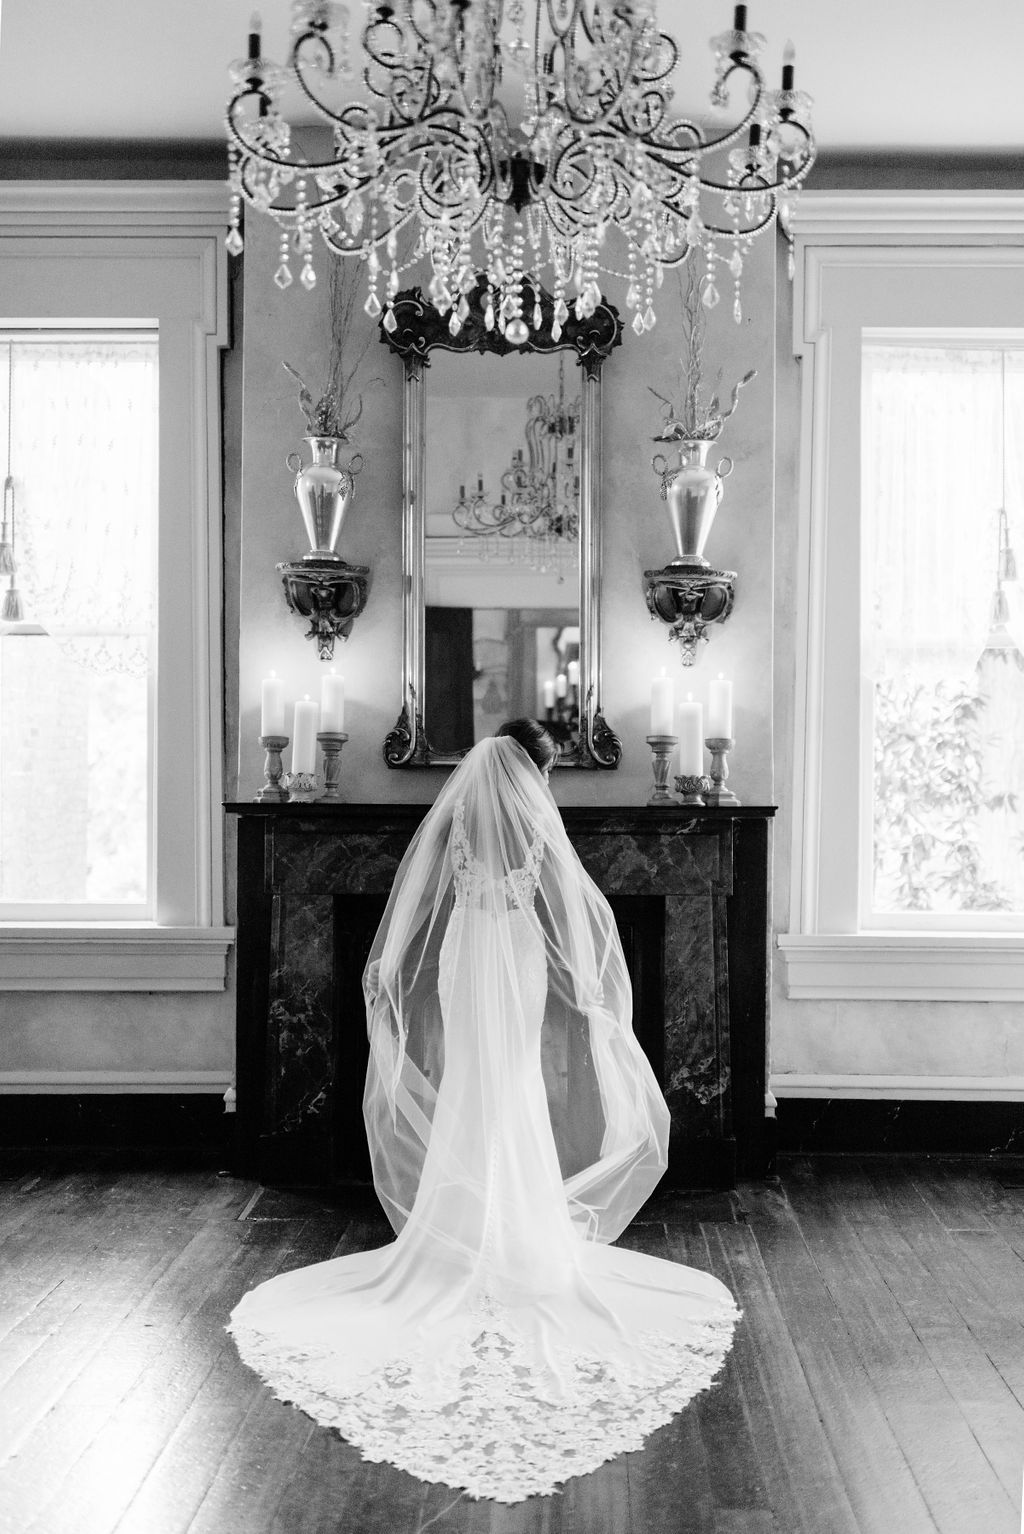 Black and white bridal portrait for Nashville wedding by Maria Gloer Photography